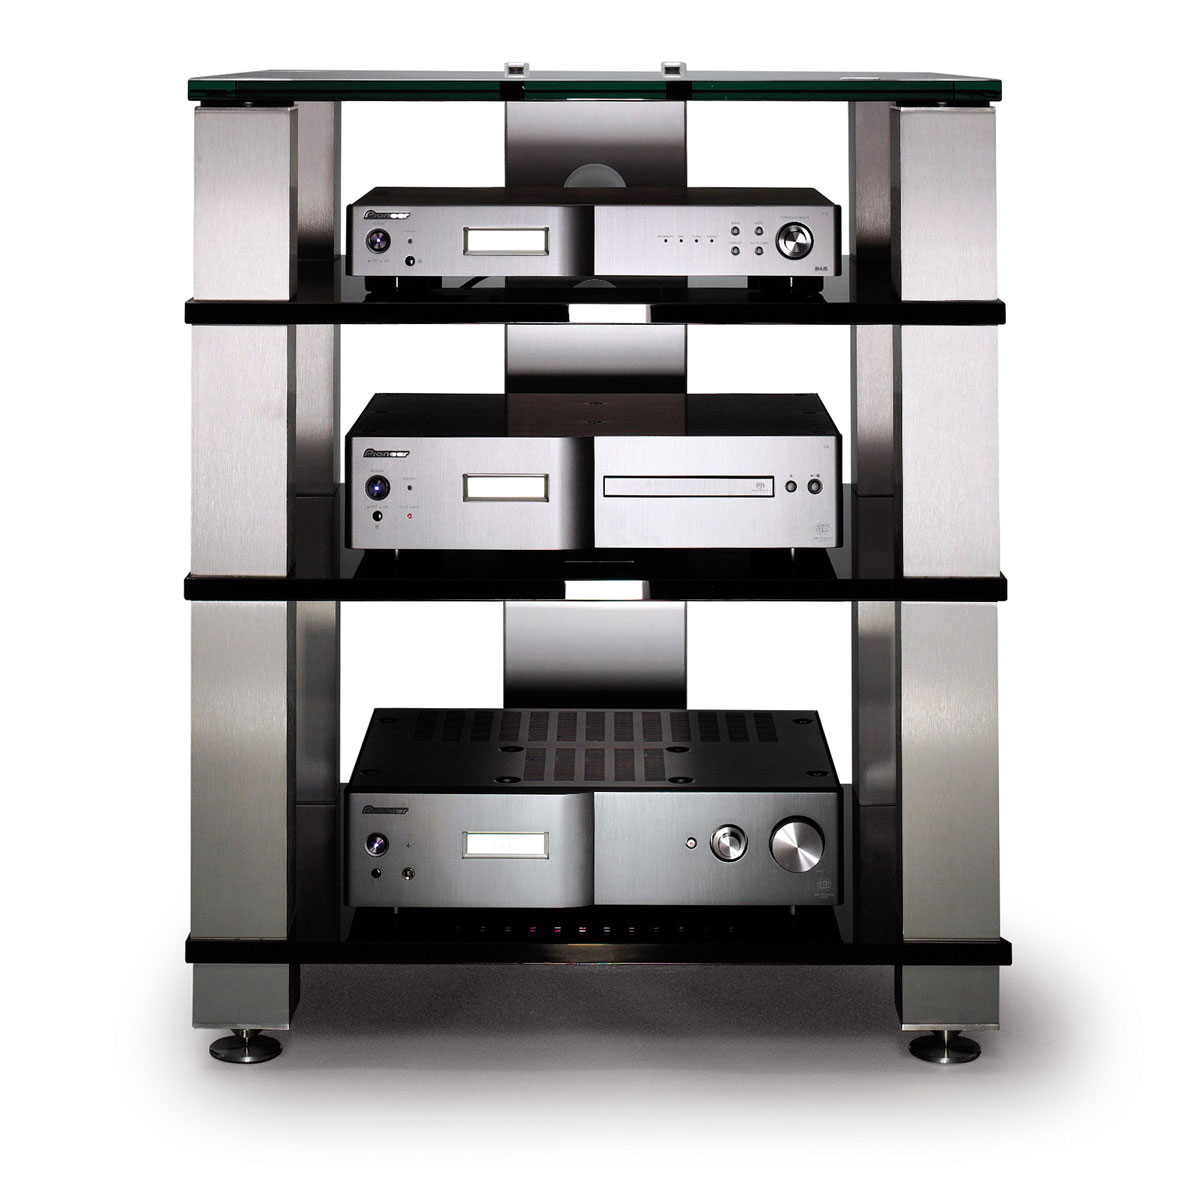 Tv Hifi Rack : hifi m bel phonom bel hifi racks hifi regale audio ~ Michelbontemps.com Haus und Dekorationen